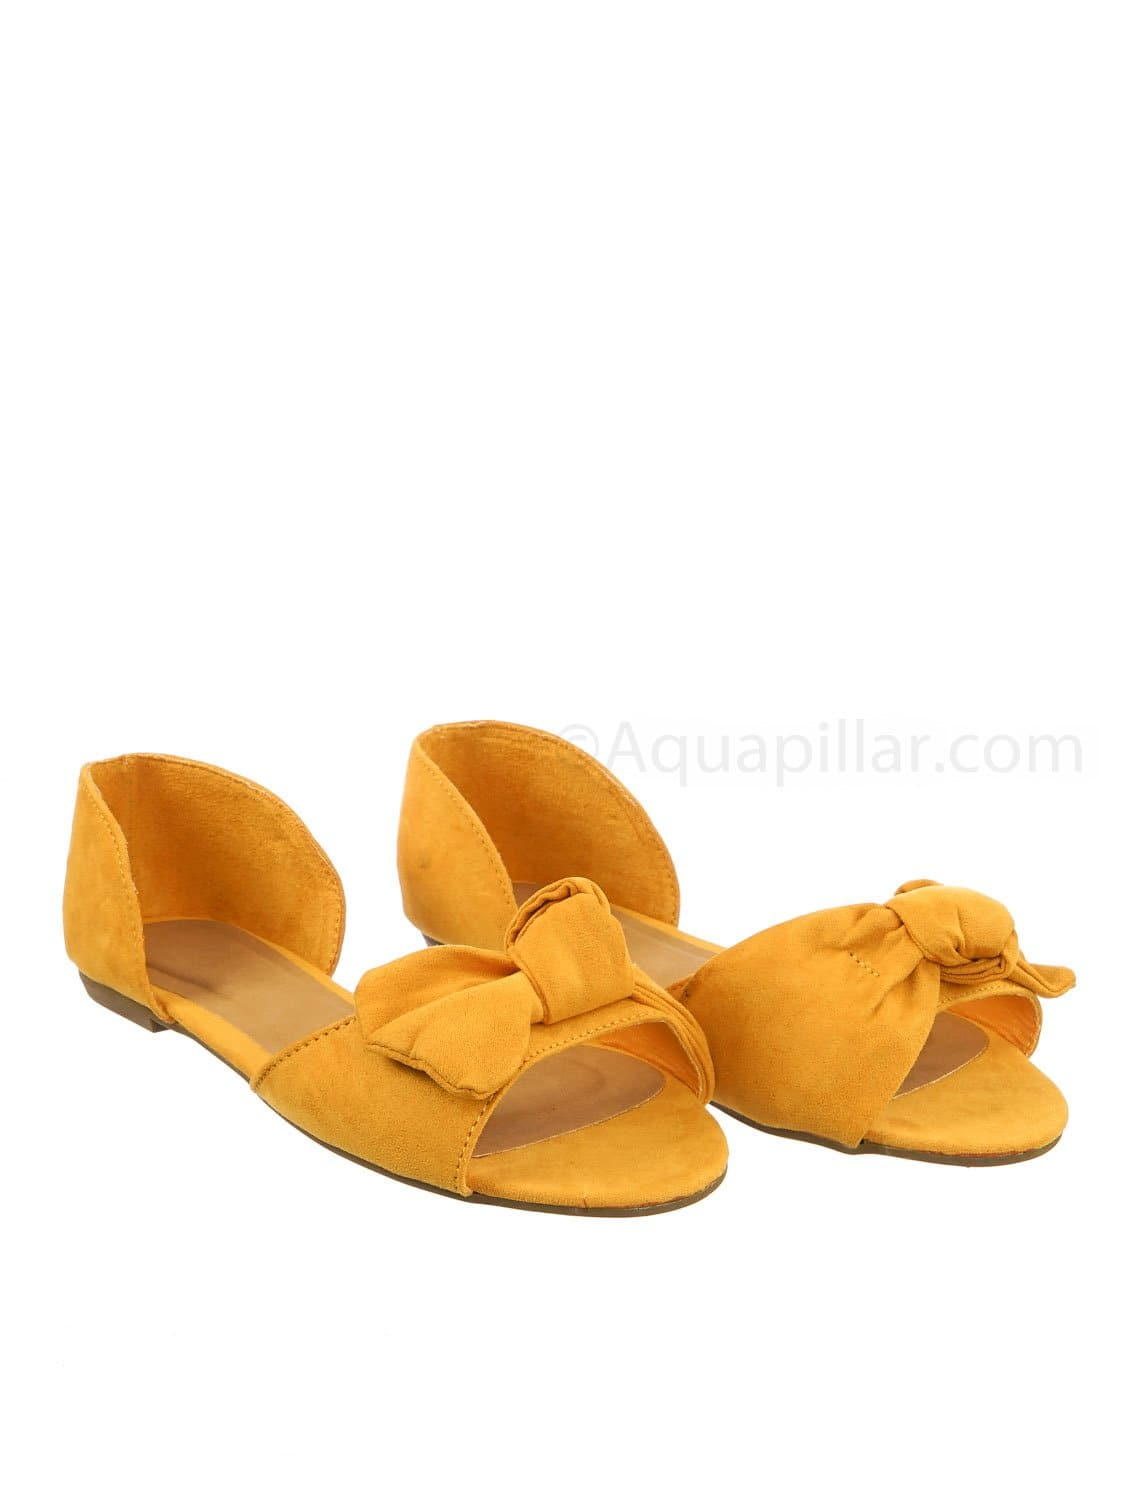 Leona77 MgdFs Bow d'Orsay Peep Toe Flats - Women Slip On Two Piece Sandal